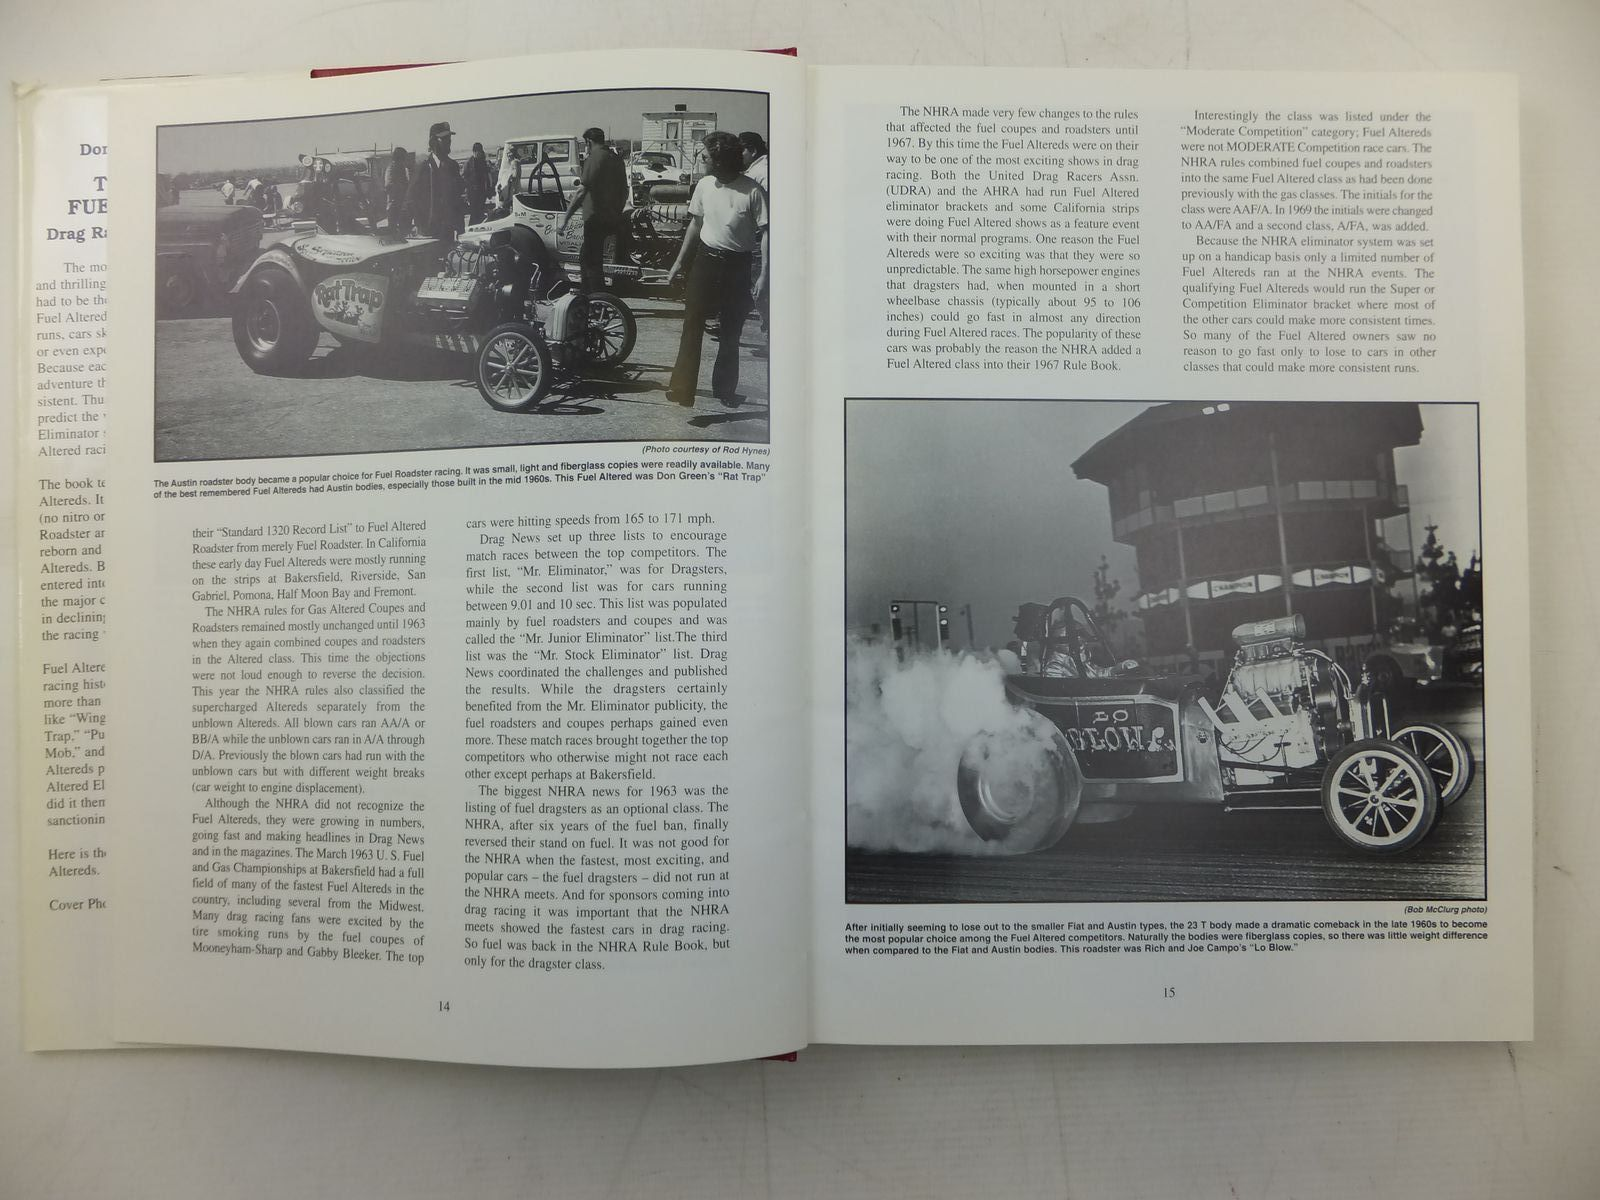 THOSE WILD FUEL ALTEREDS DRAG RACING IN THE SIXTIES written by